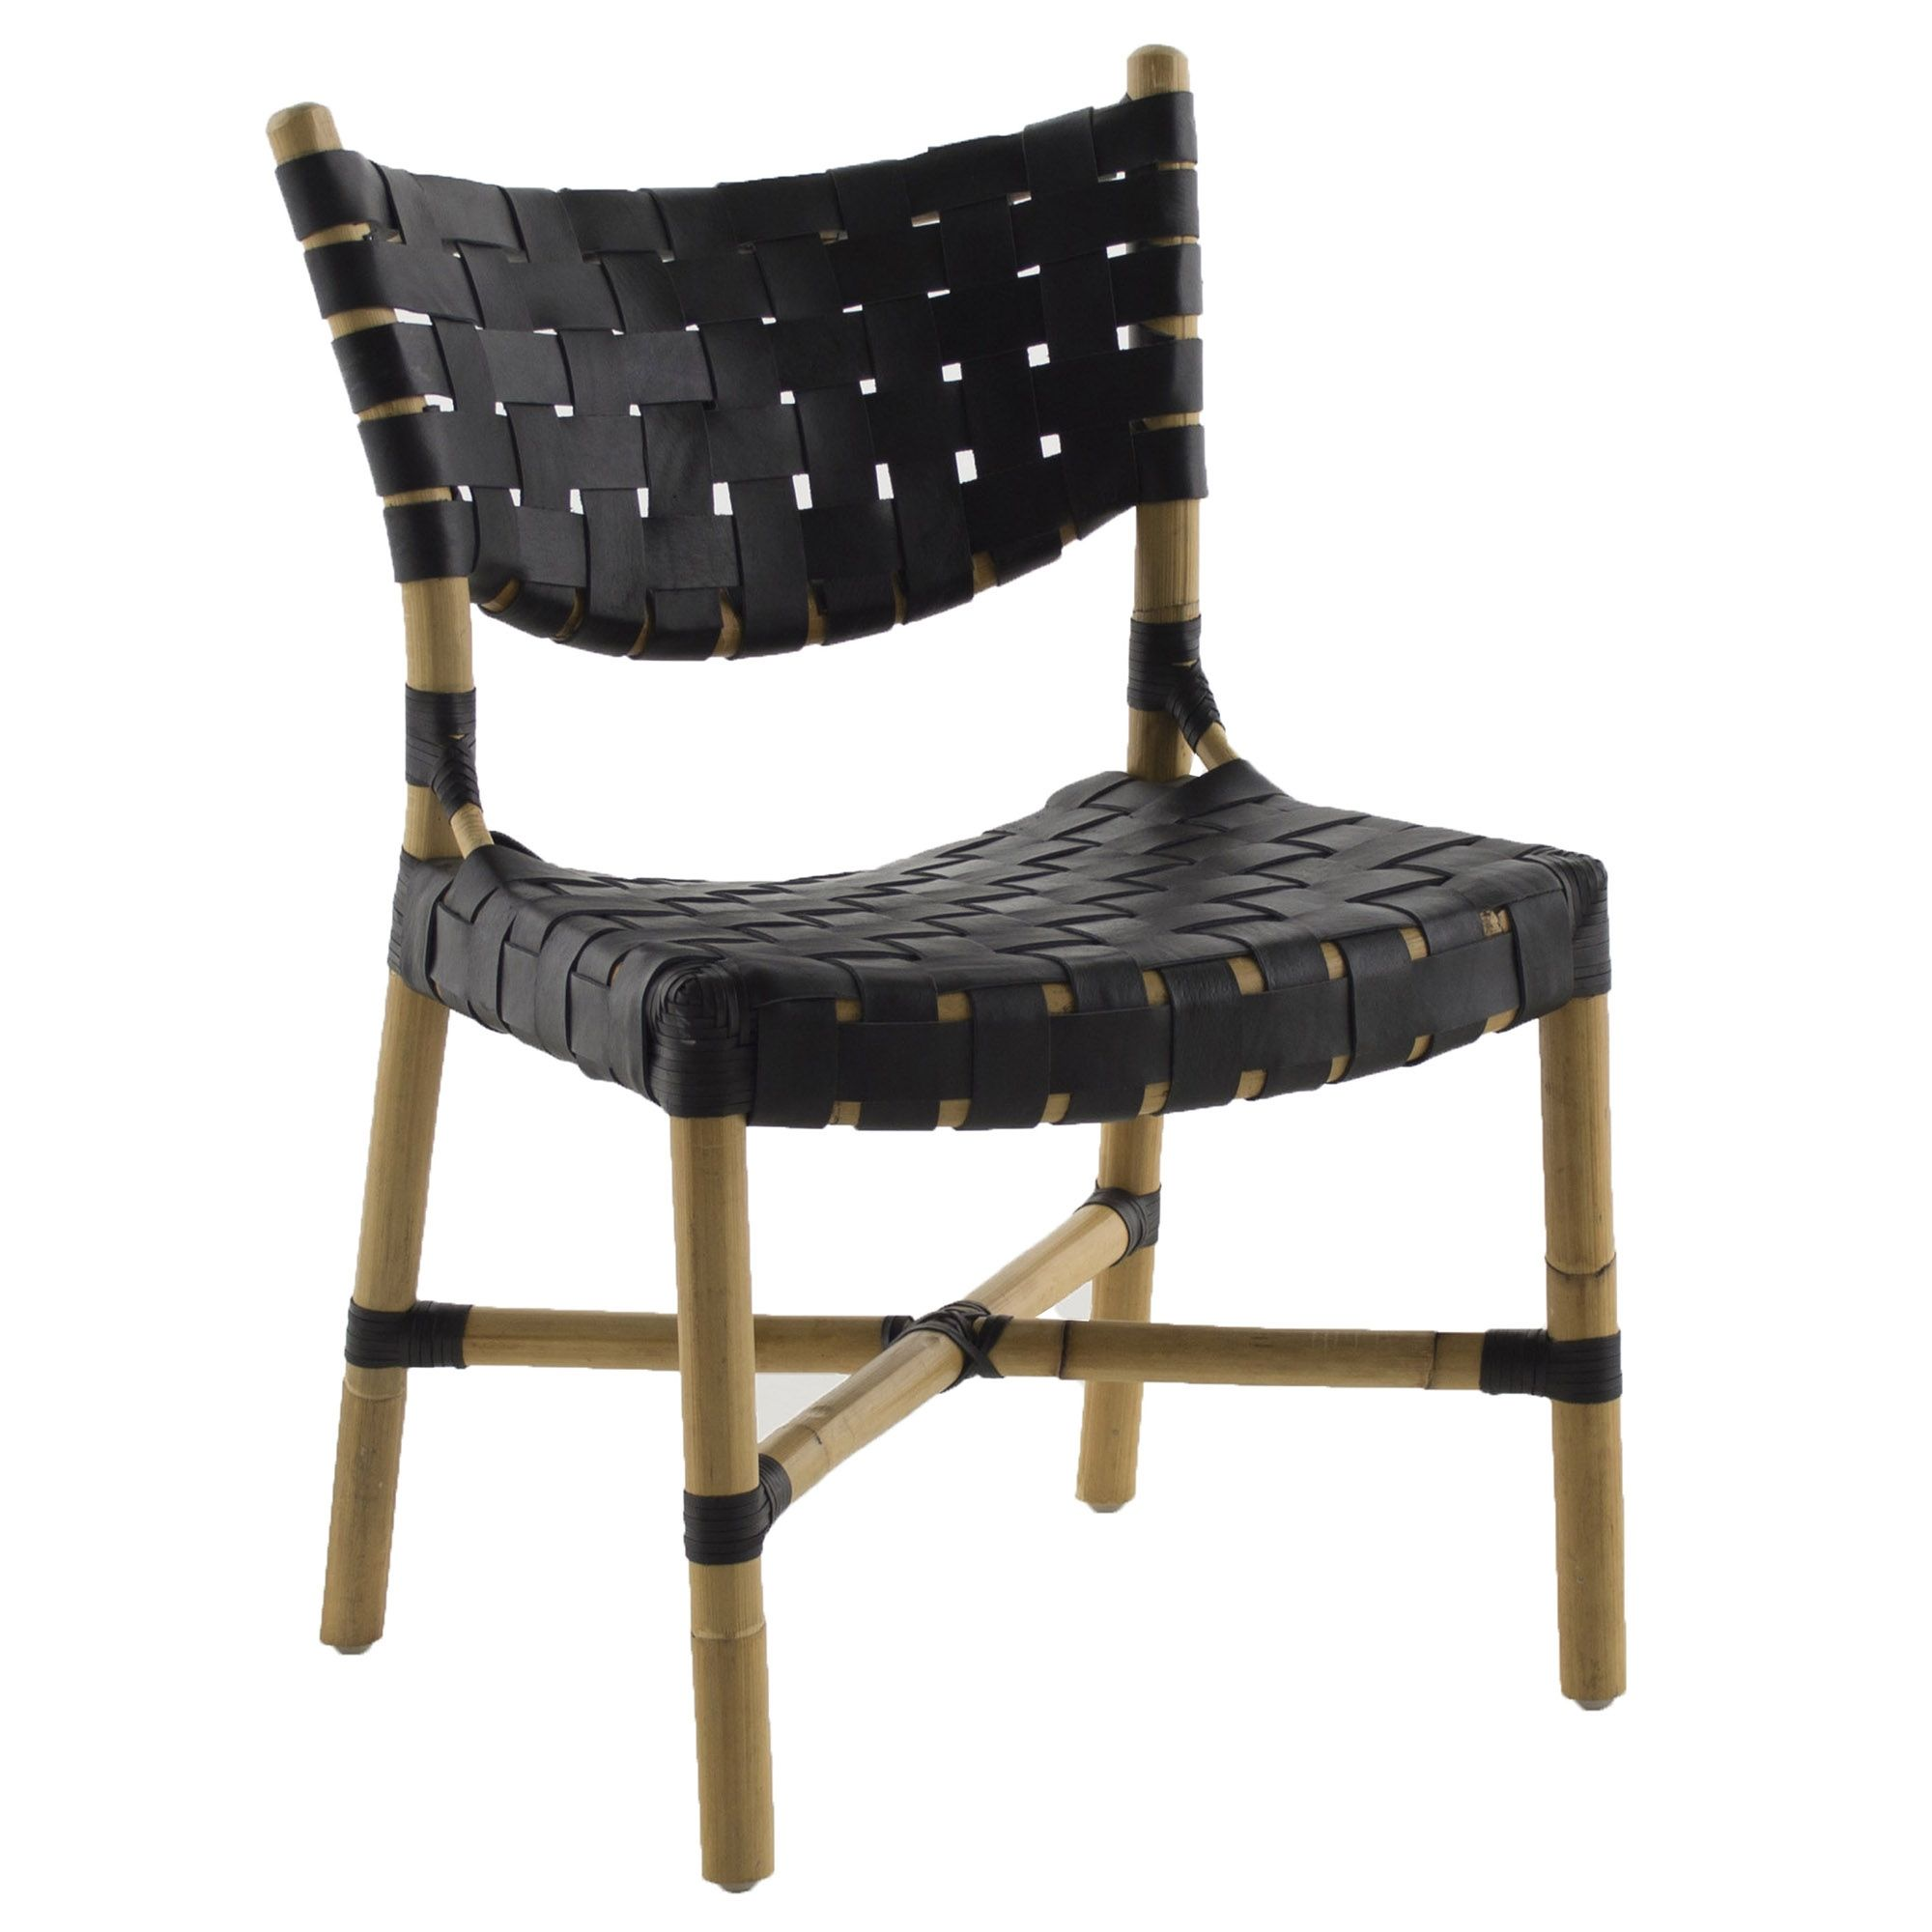 Morrisons Garden Table And Chairs Set: Gabby Morrison Chair In 2019